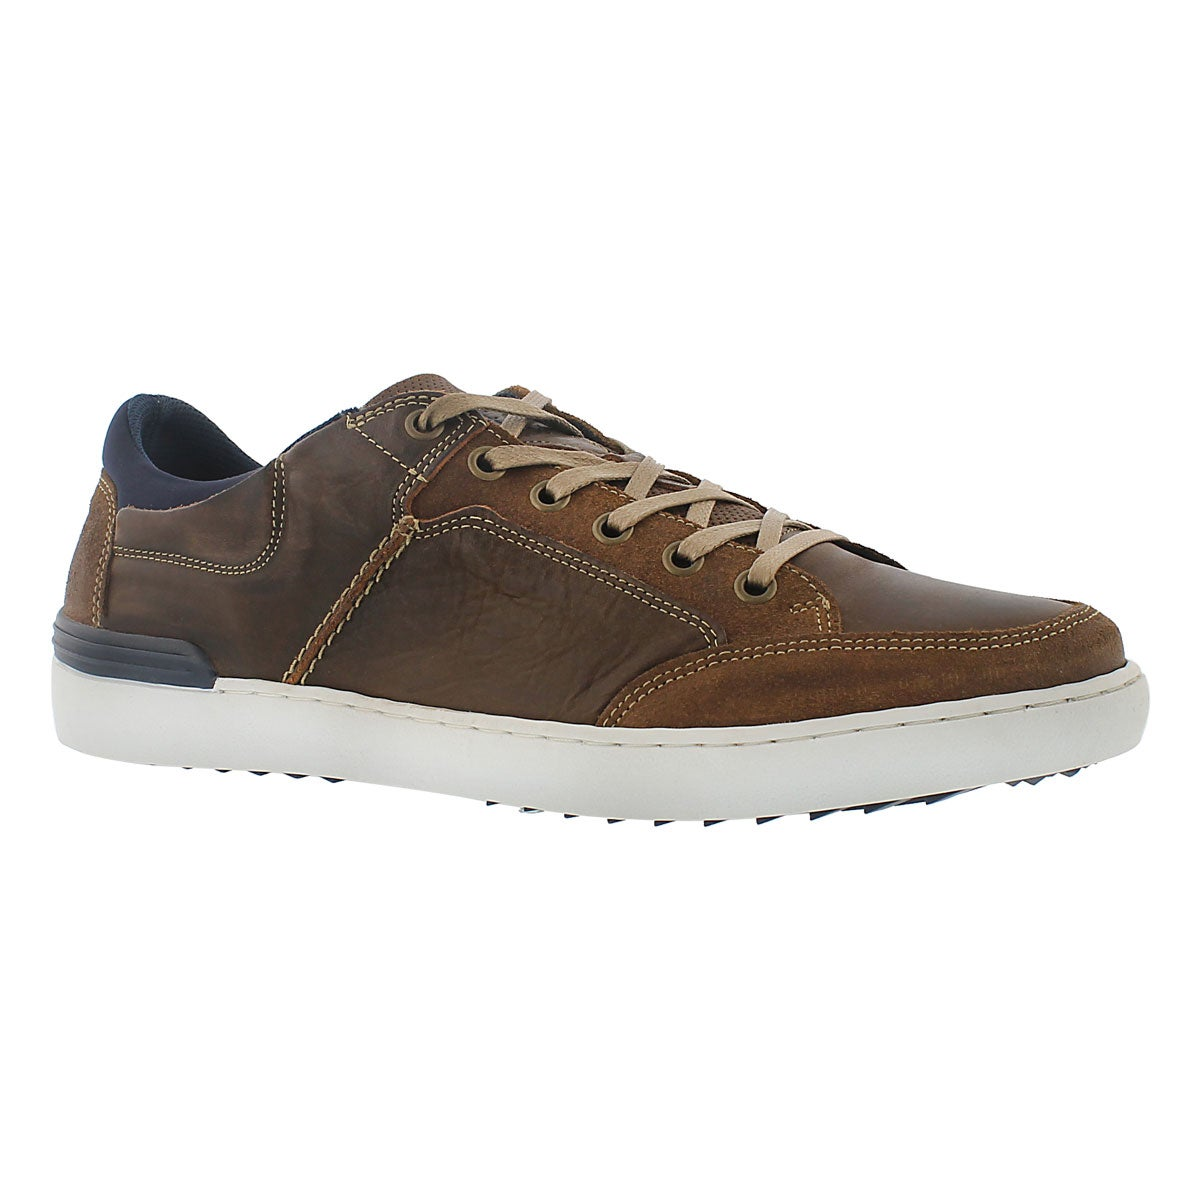 Men's JEREMY camel lace up fashion sneakers